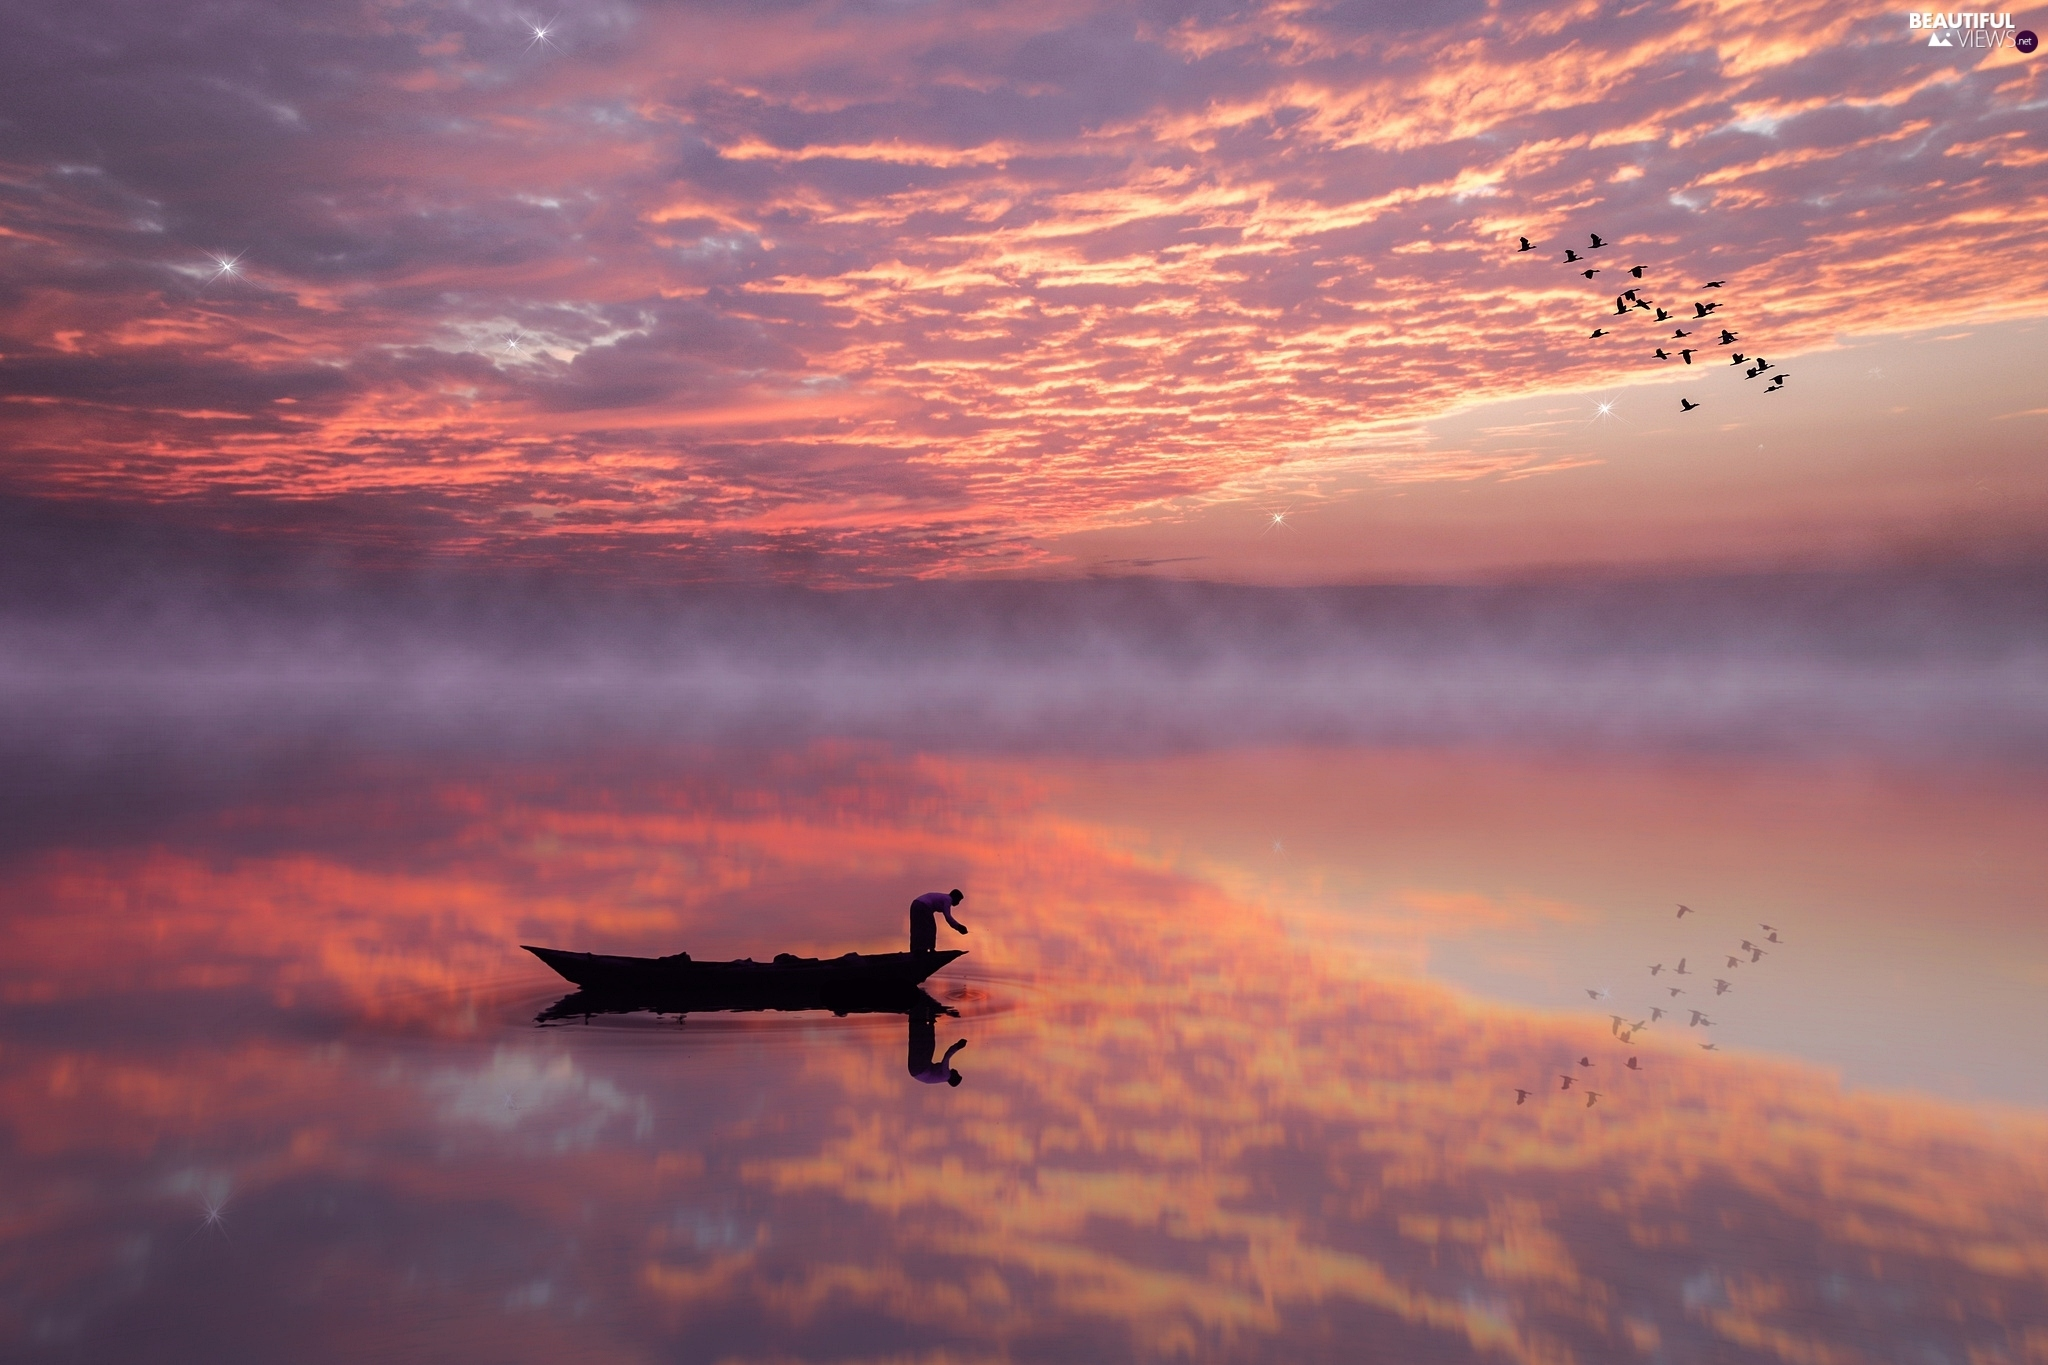 birds, Boat, reflection, lake, Fog, Great Sunsets, clouds